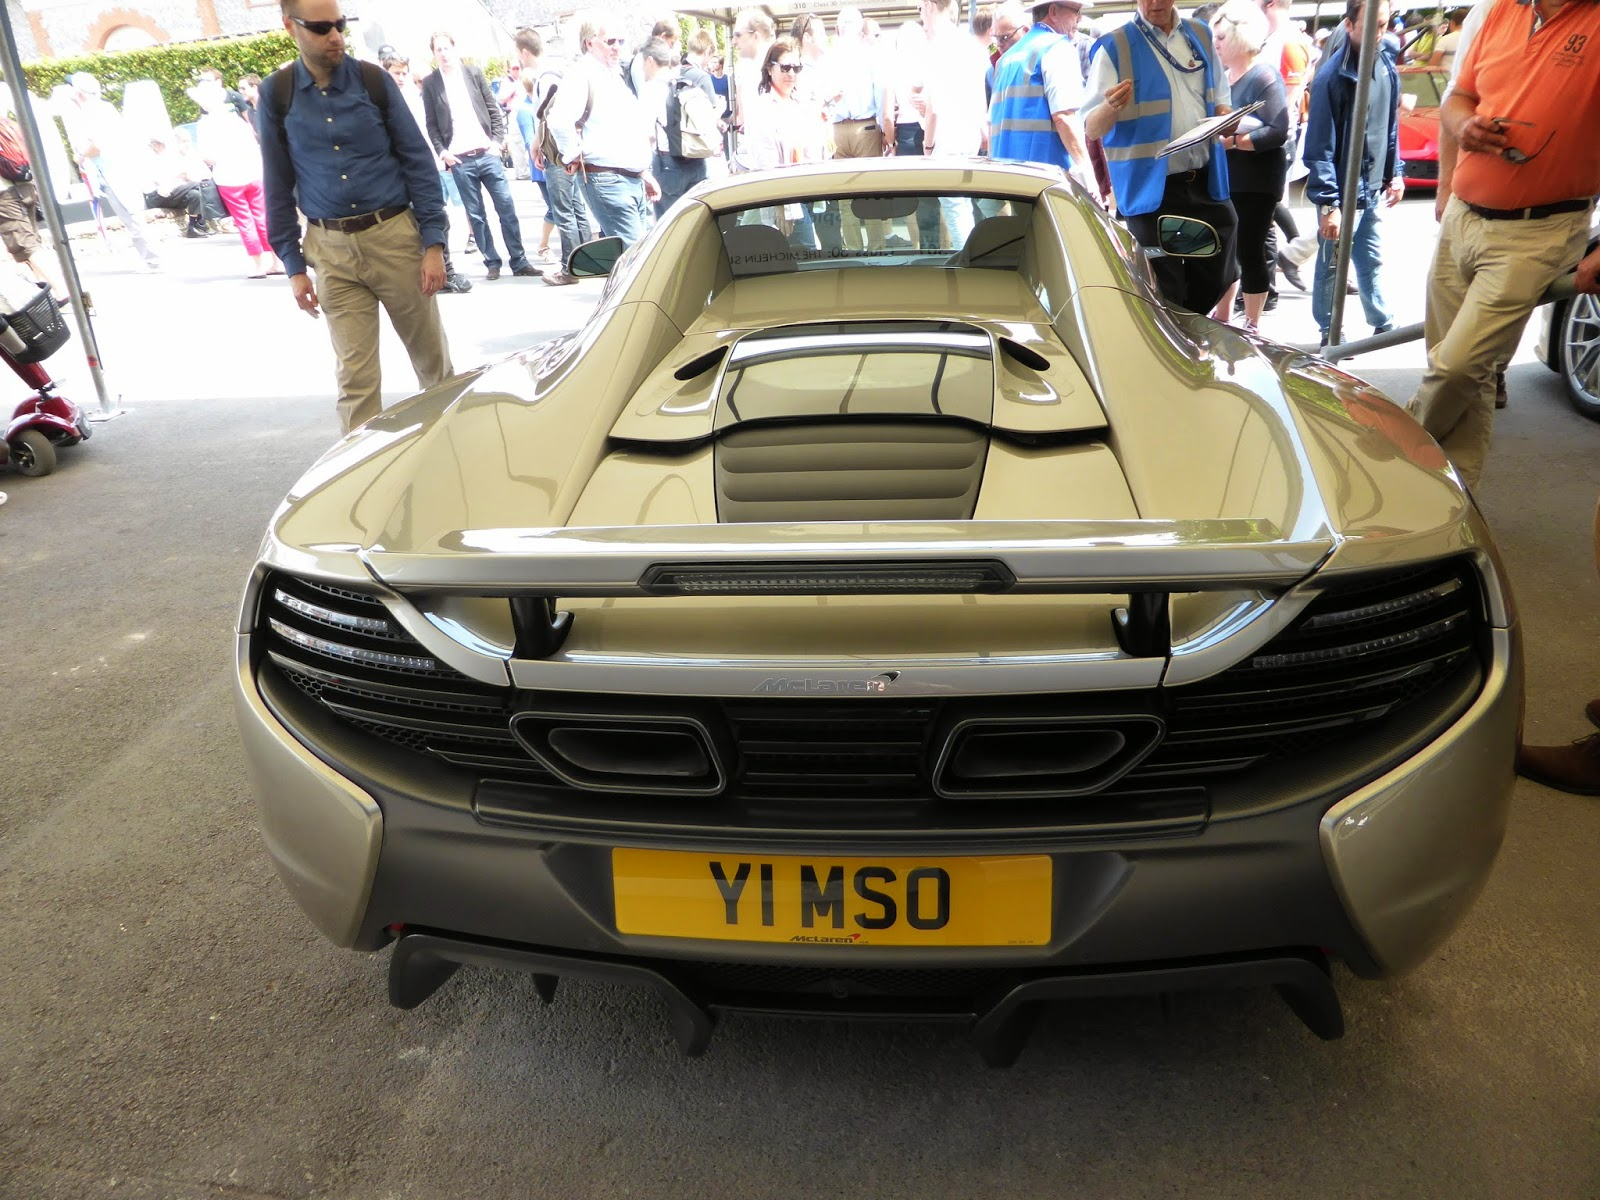 McLaren 650S MSO in the supercar paddock